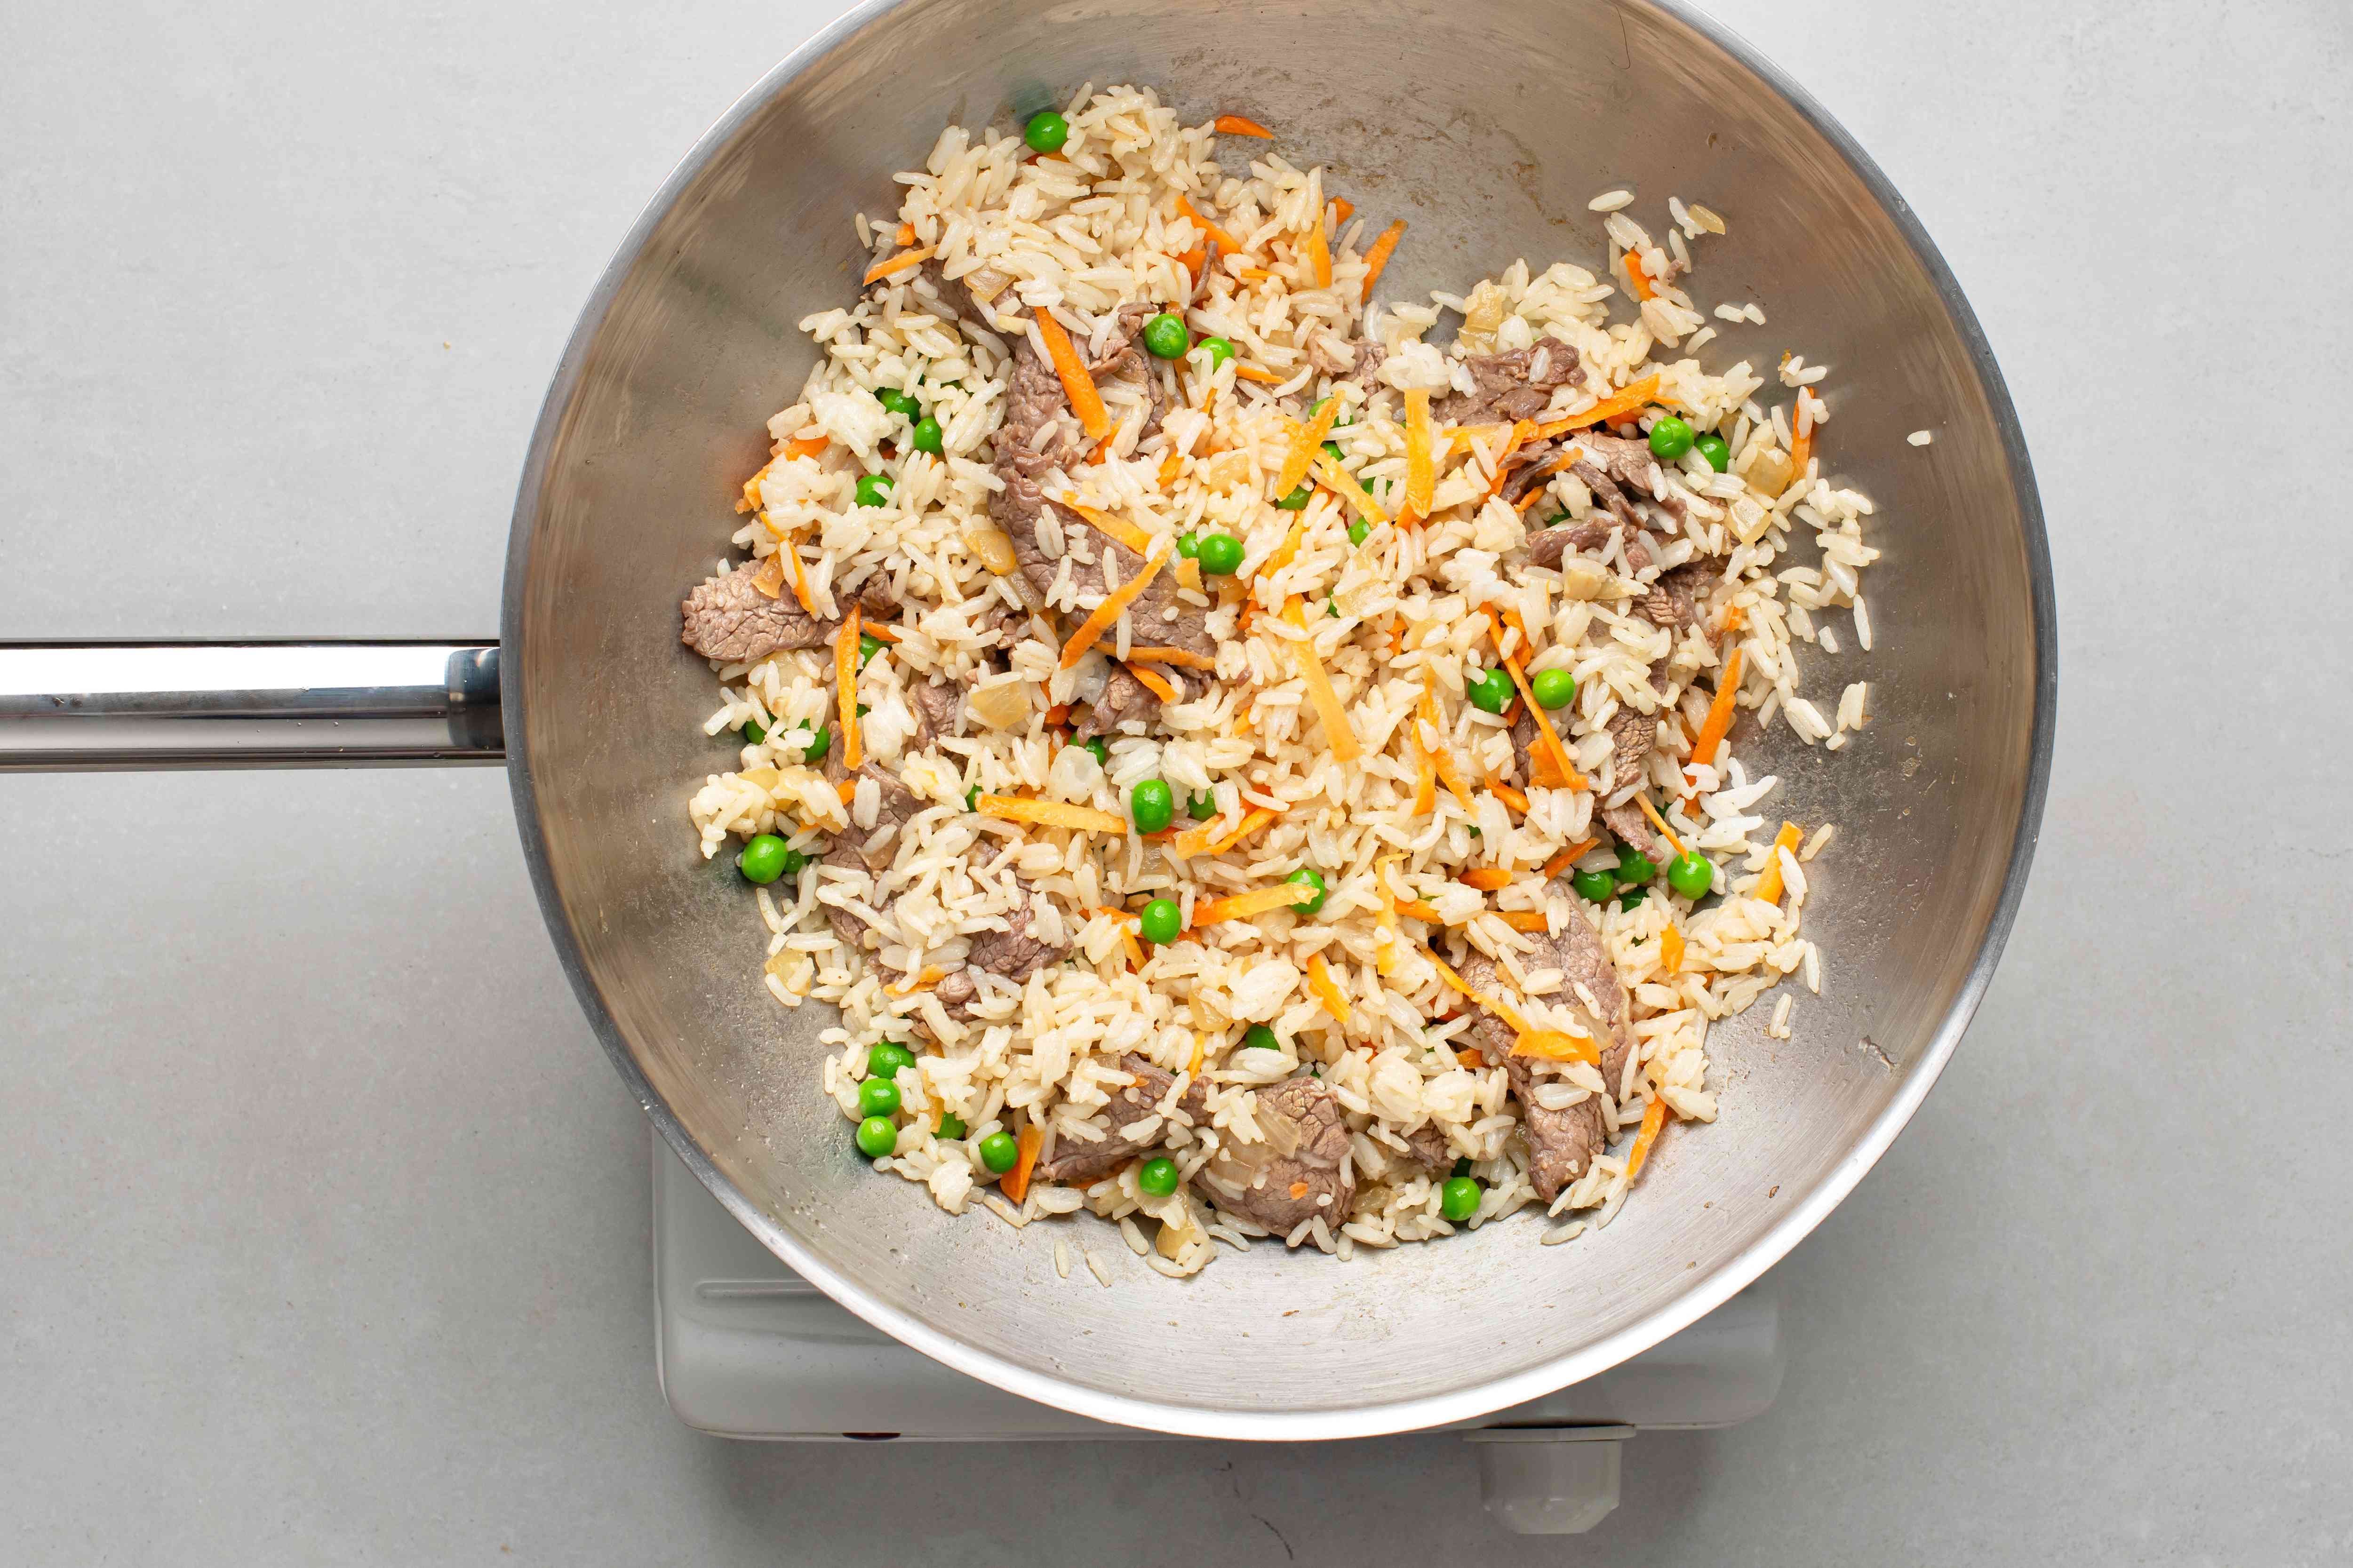 add carrots and peas to the beef and rice mixture